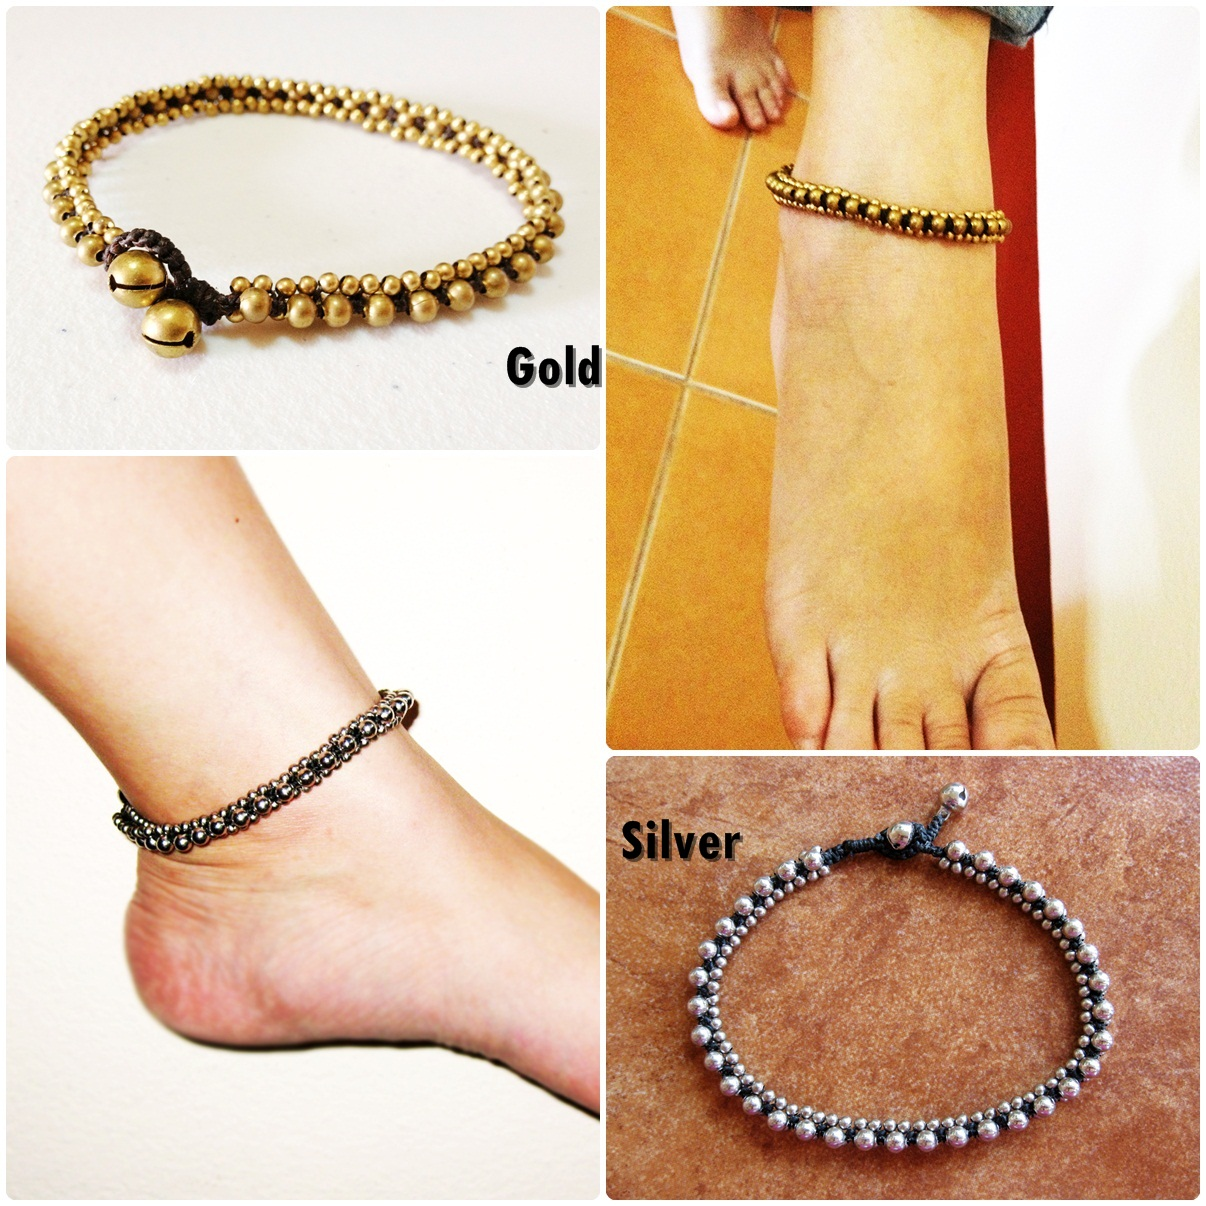 women bangles online gold bracelet antique beach chain tassel ankle white anklet jewelry feet vintage piece flower product anklets leg bridal bracelets plated with gift exquisite s beads store